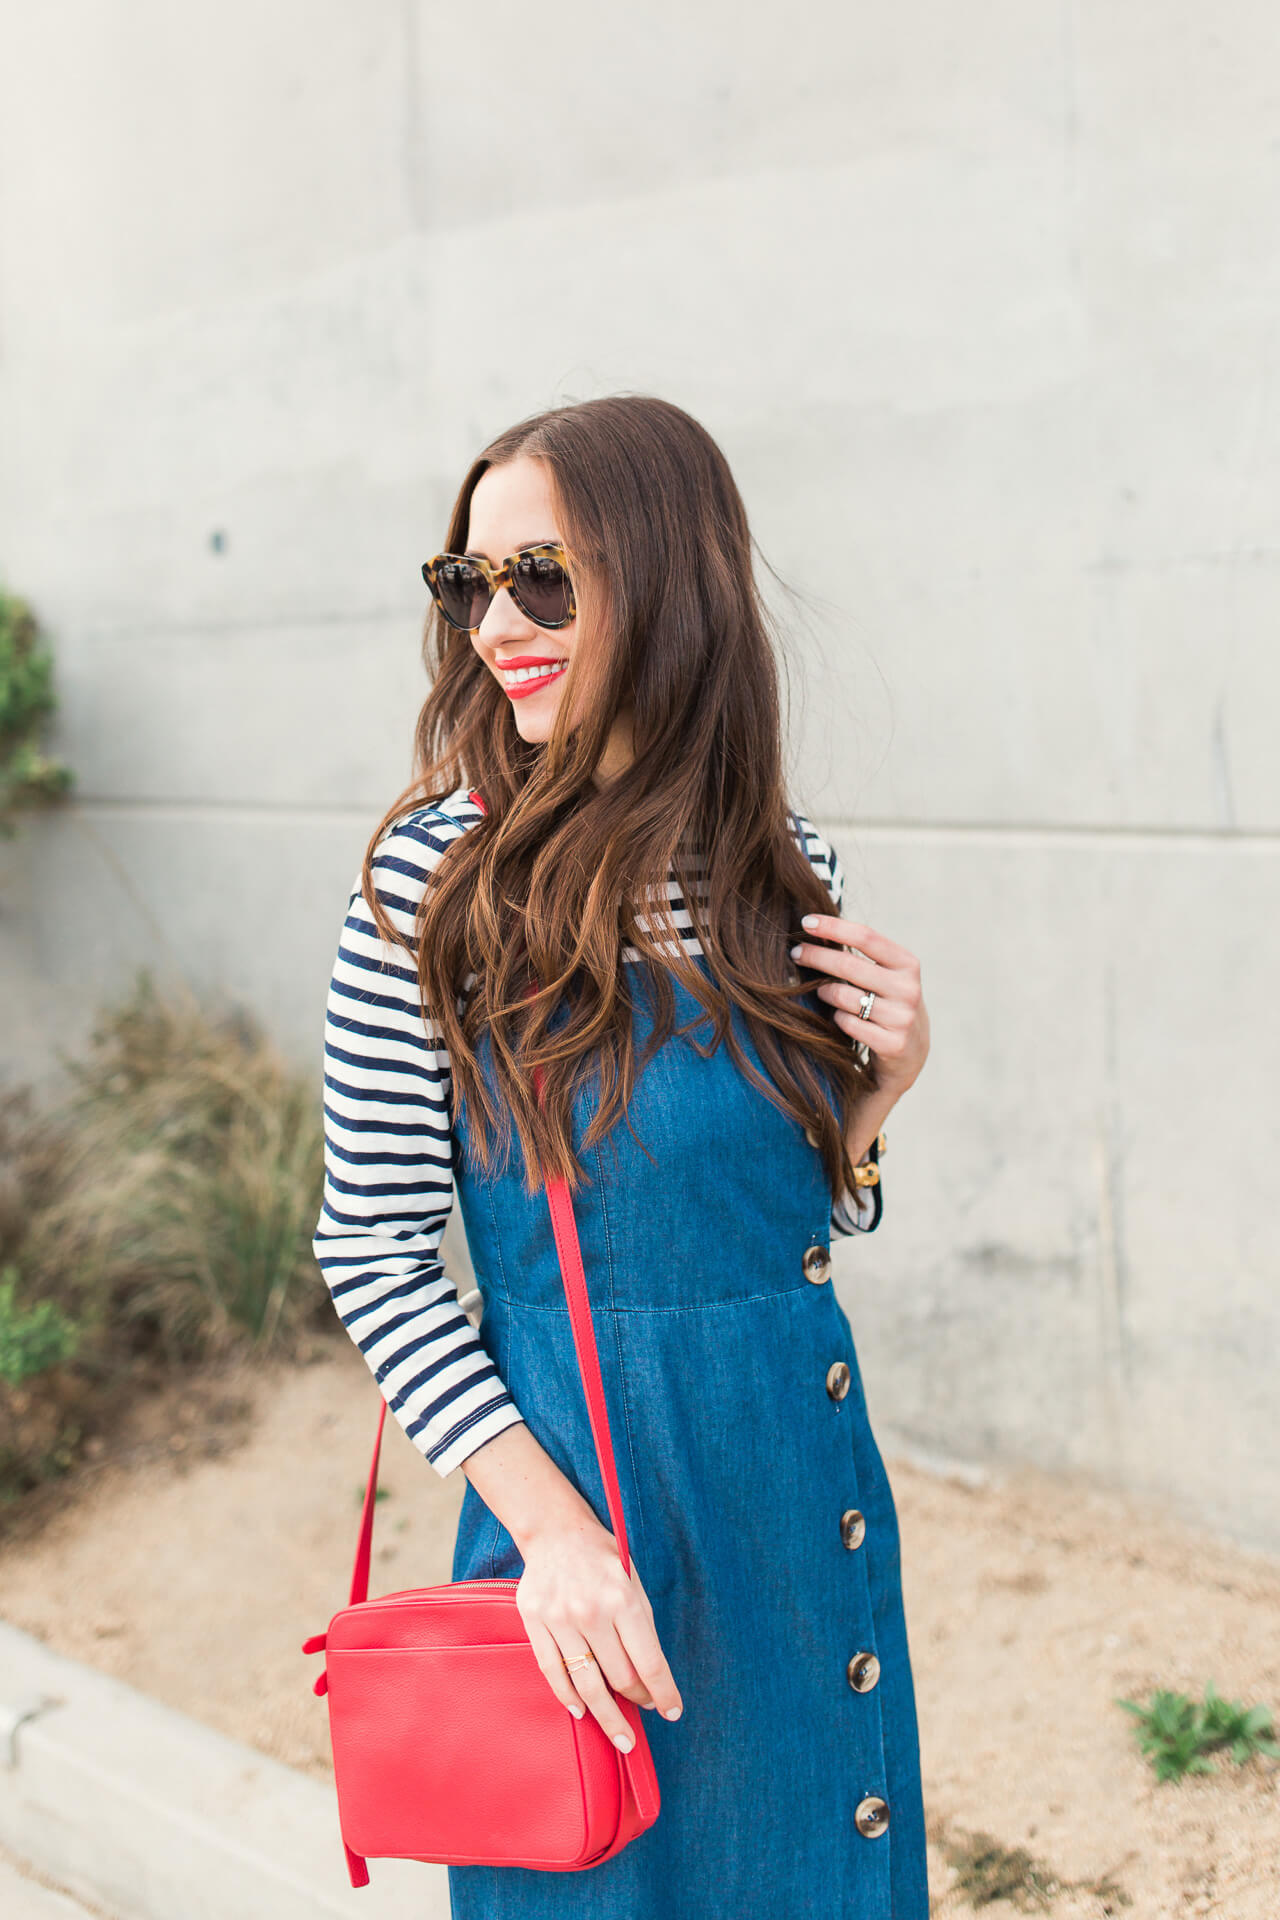 a cute layered outfit with a denim dress and striped shirt - M Loves M Los Angeles Orange County feminine fashion blogger @marmar